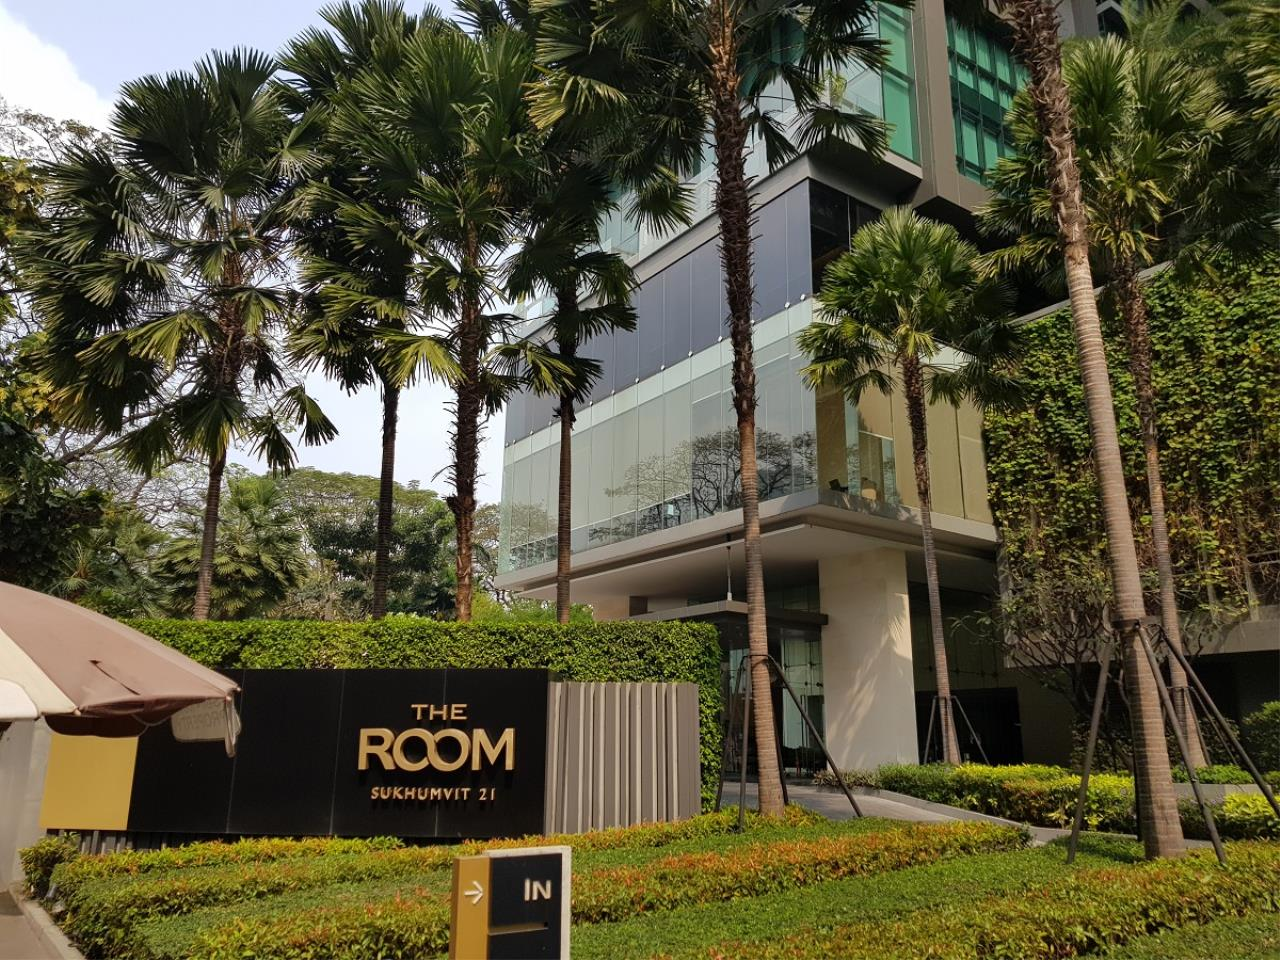 The One Residence Agency's Condo for Sale Or Rent 1 Bedrooms at The Room Sukhumvit 21 2